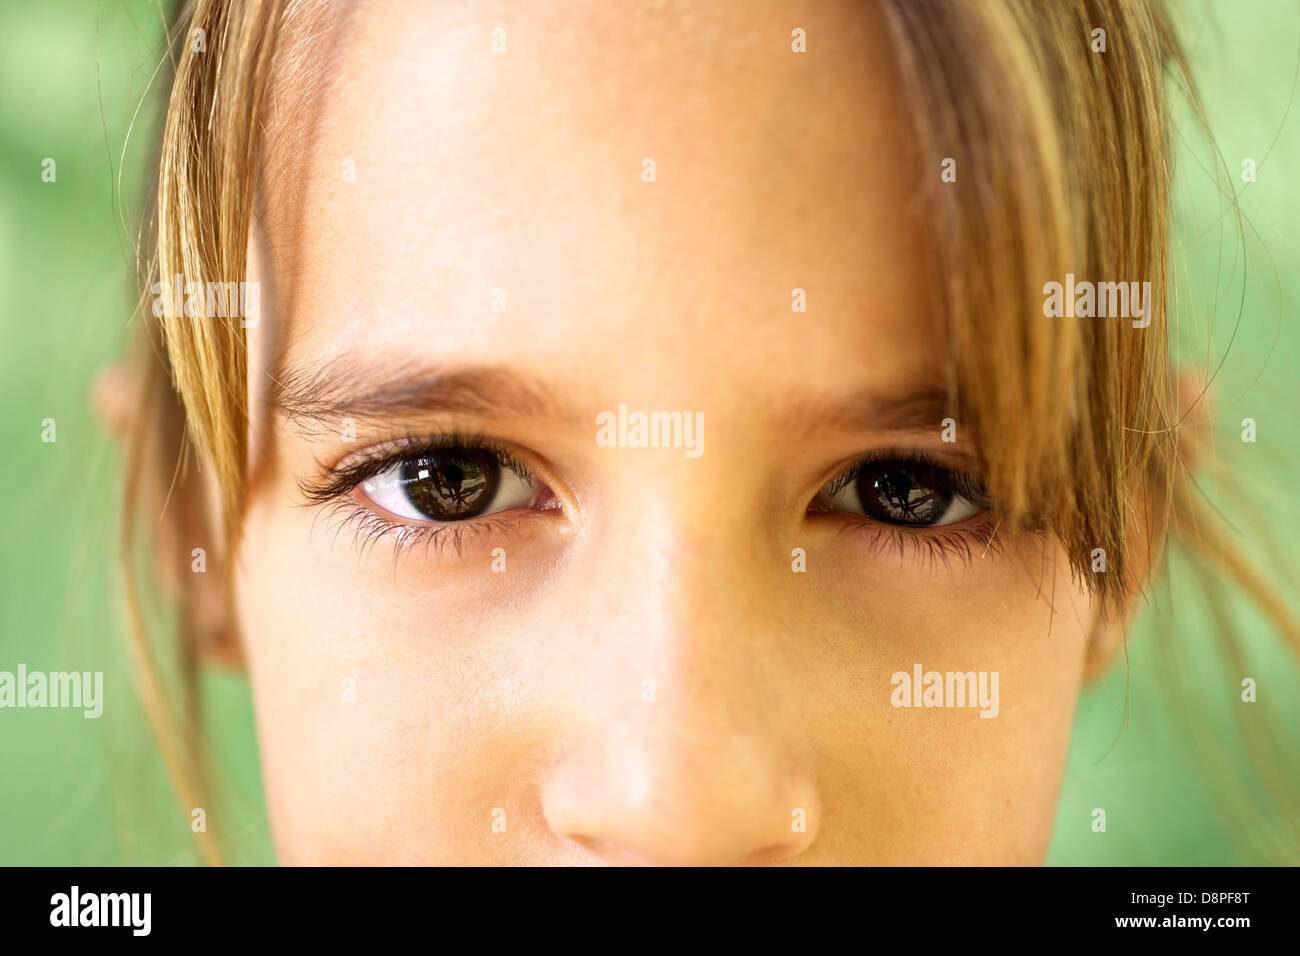 Les jeunes et les émotions, portrait of serious girl looking at camera. Libre d'yeux Photo Stock